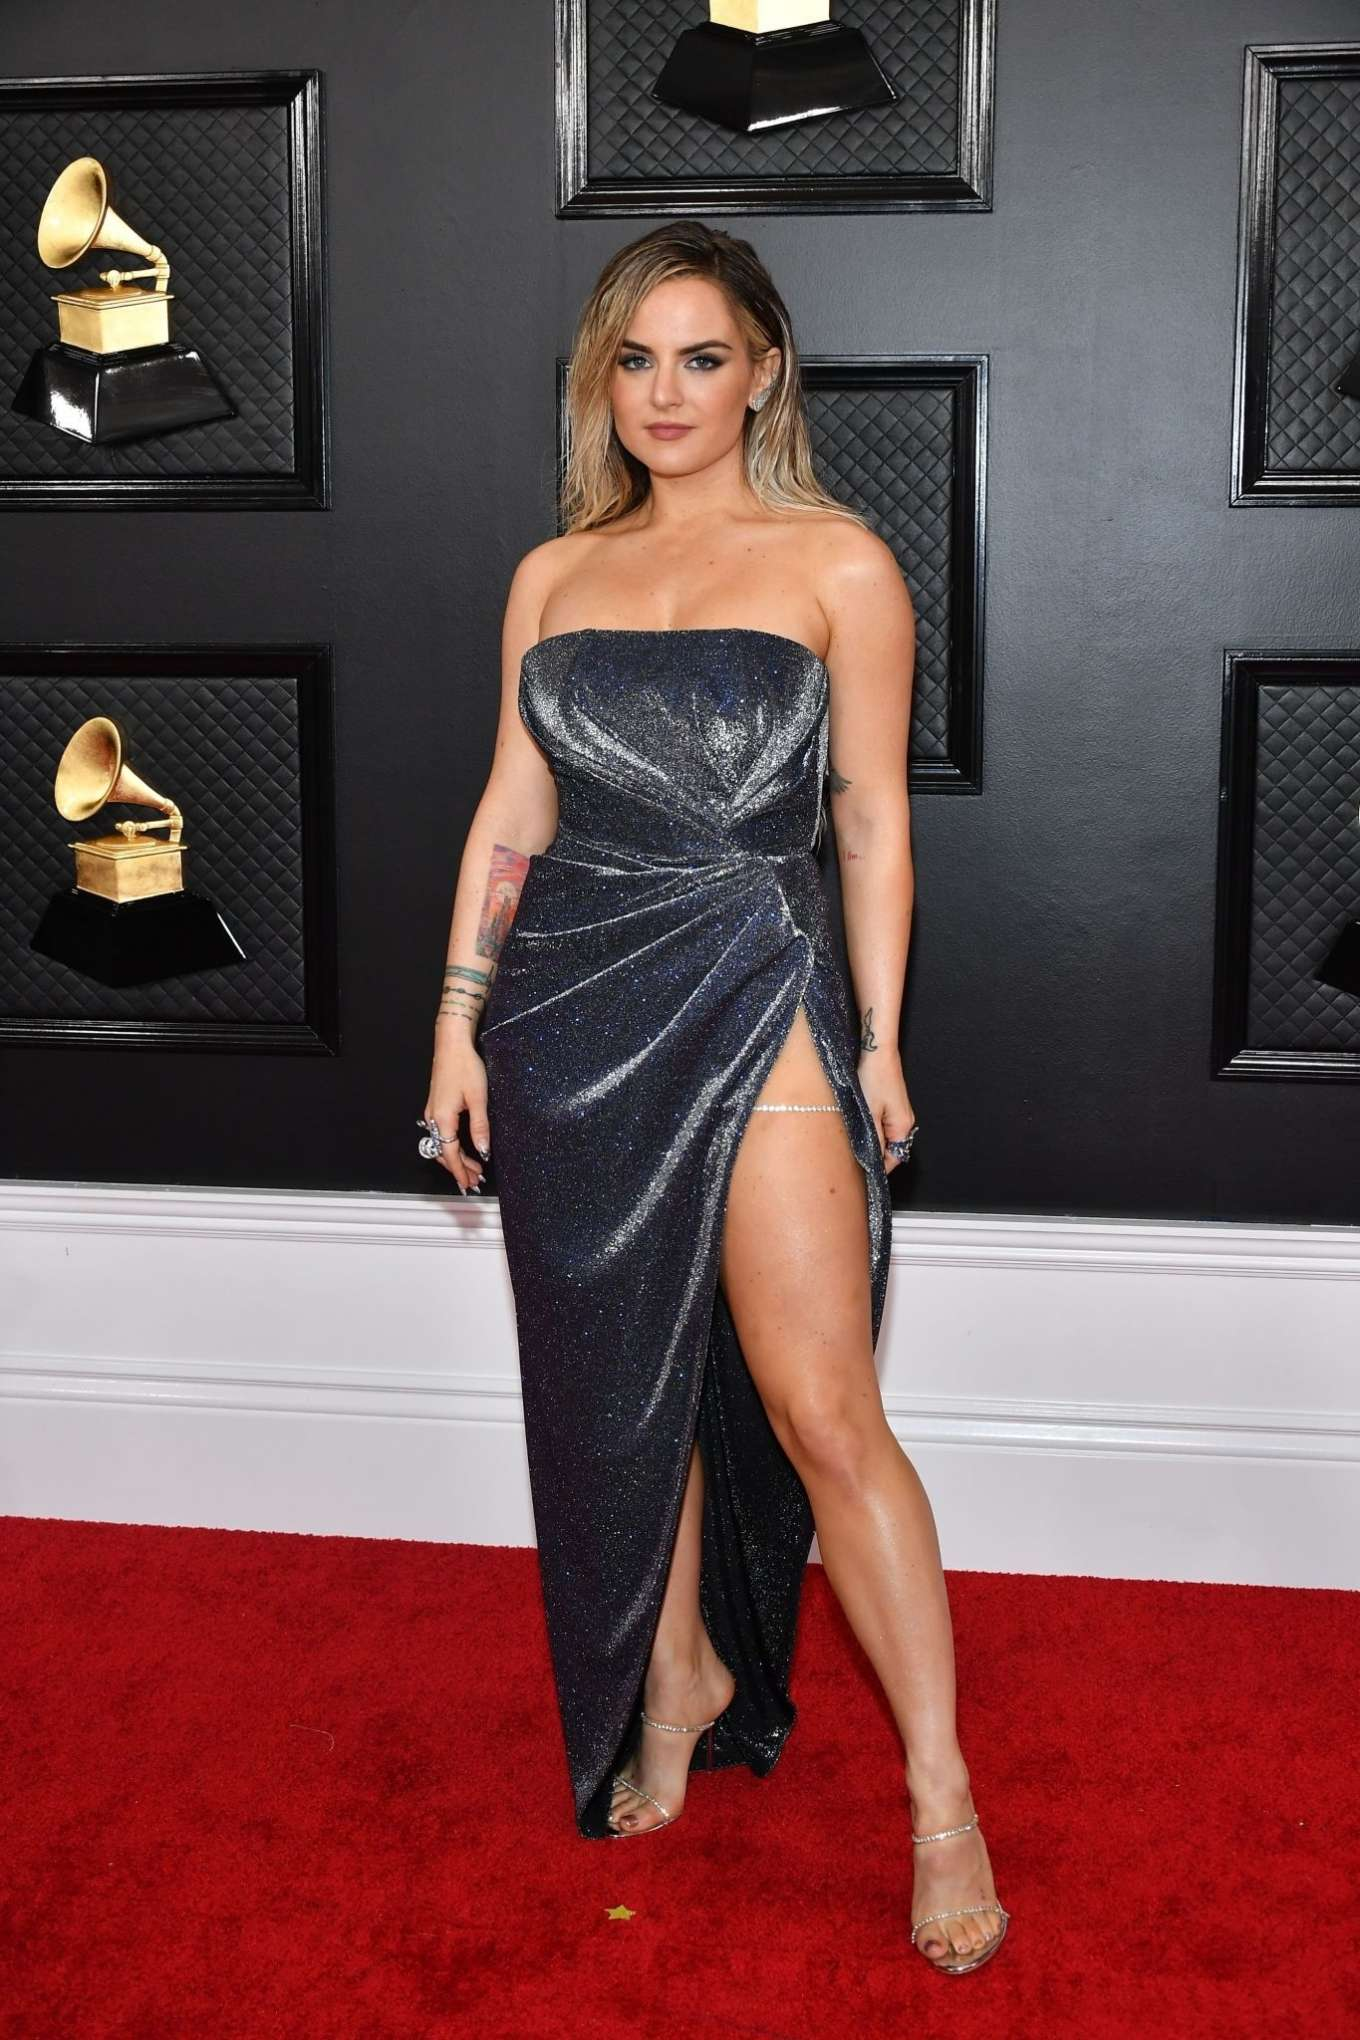 Joanna JoJo Levesque 2020 : Joanna JoJo Levesque – 2020 Grammy Awards-13